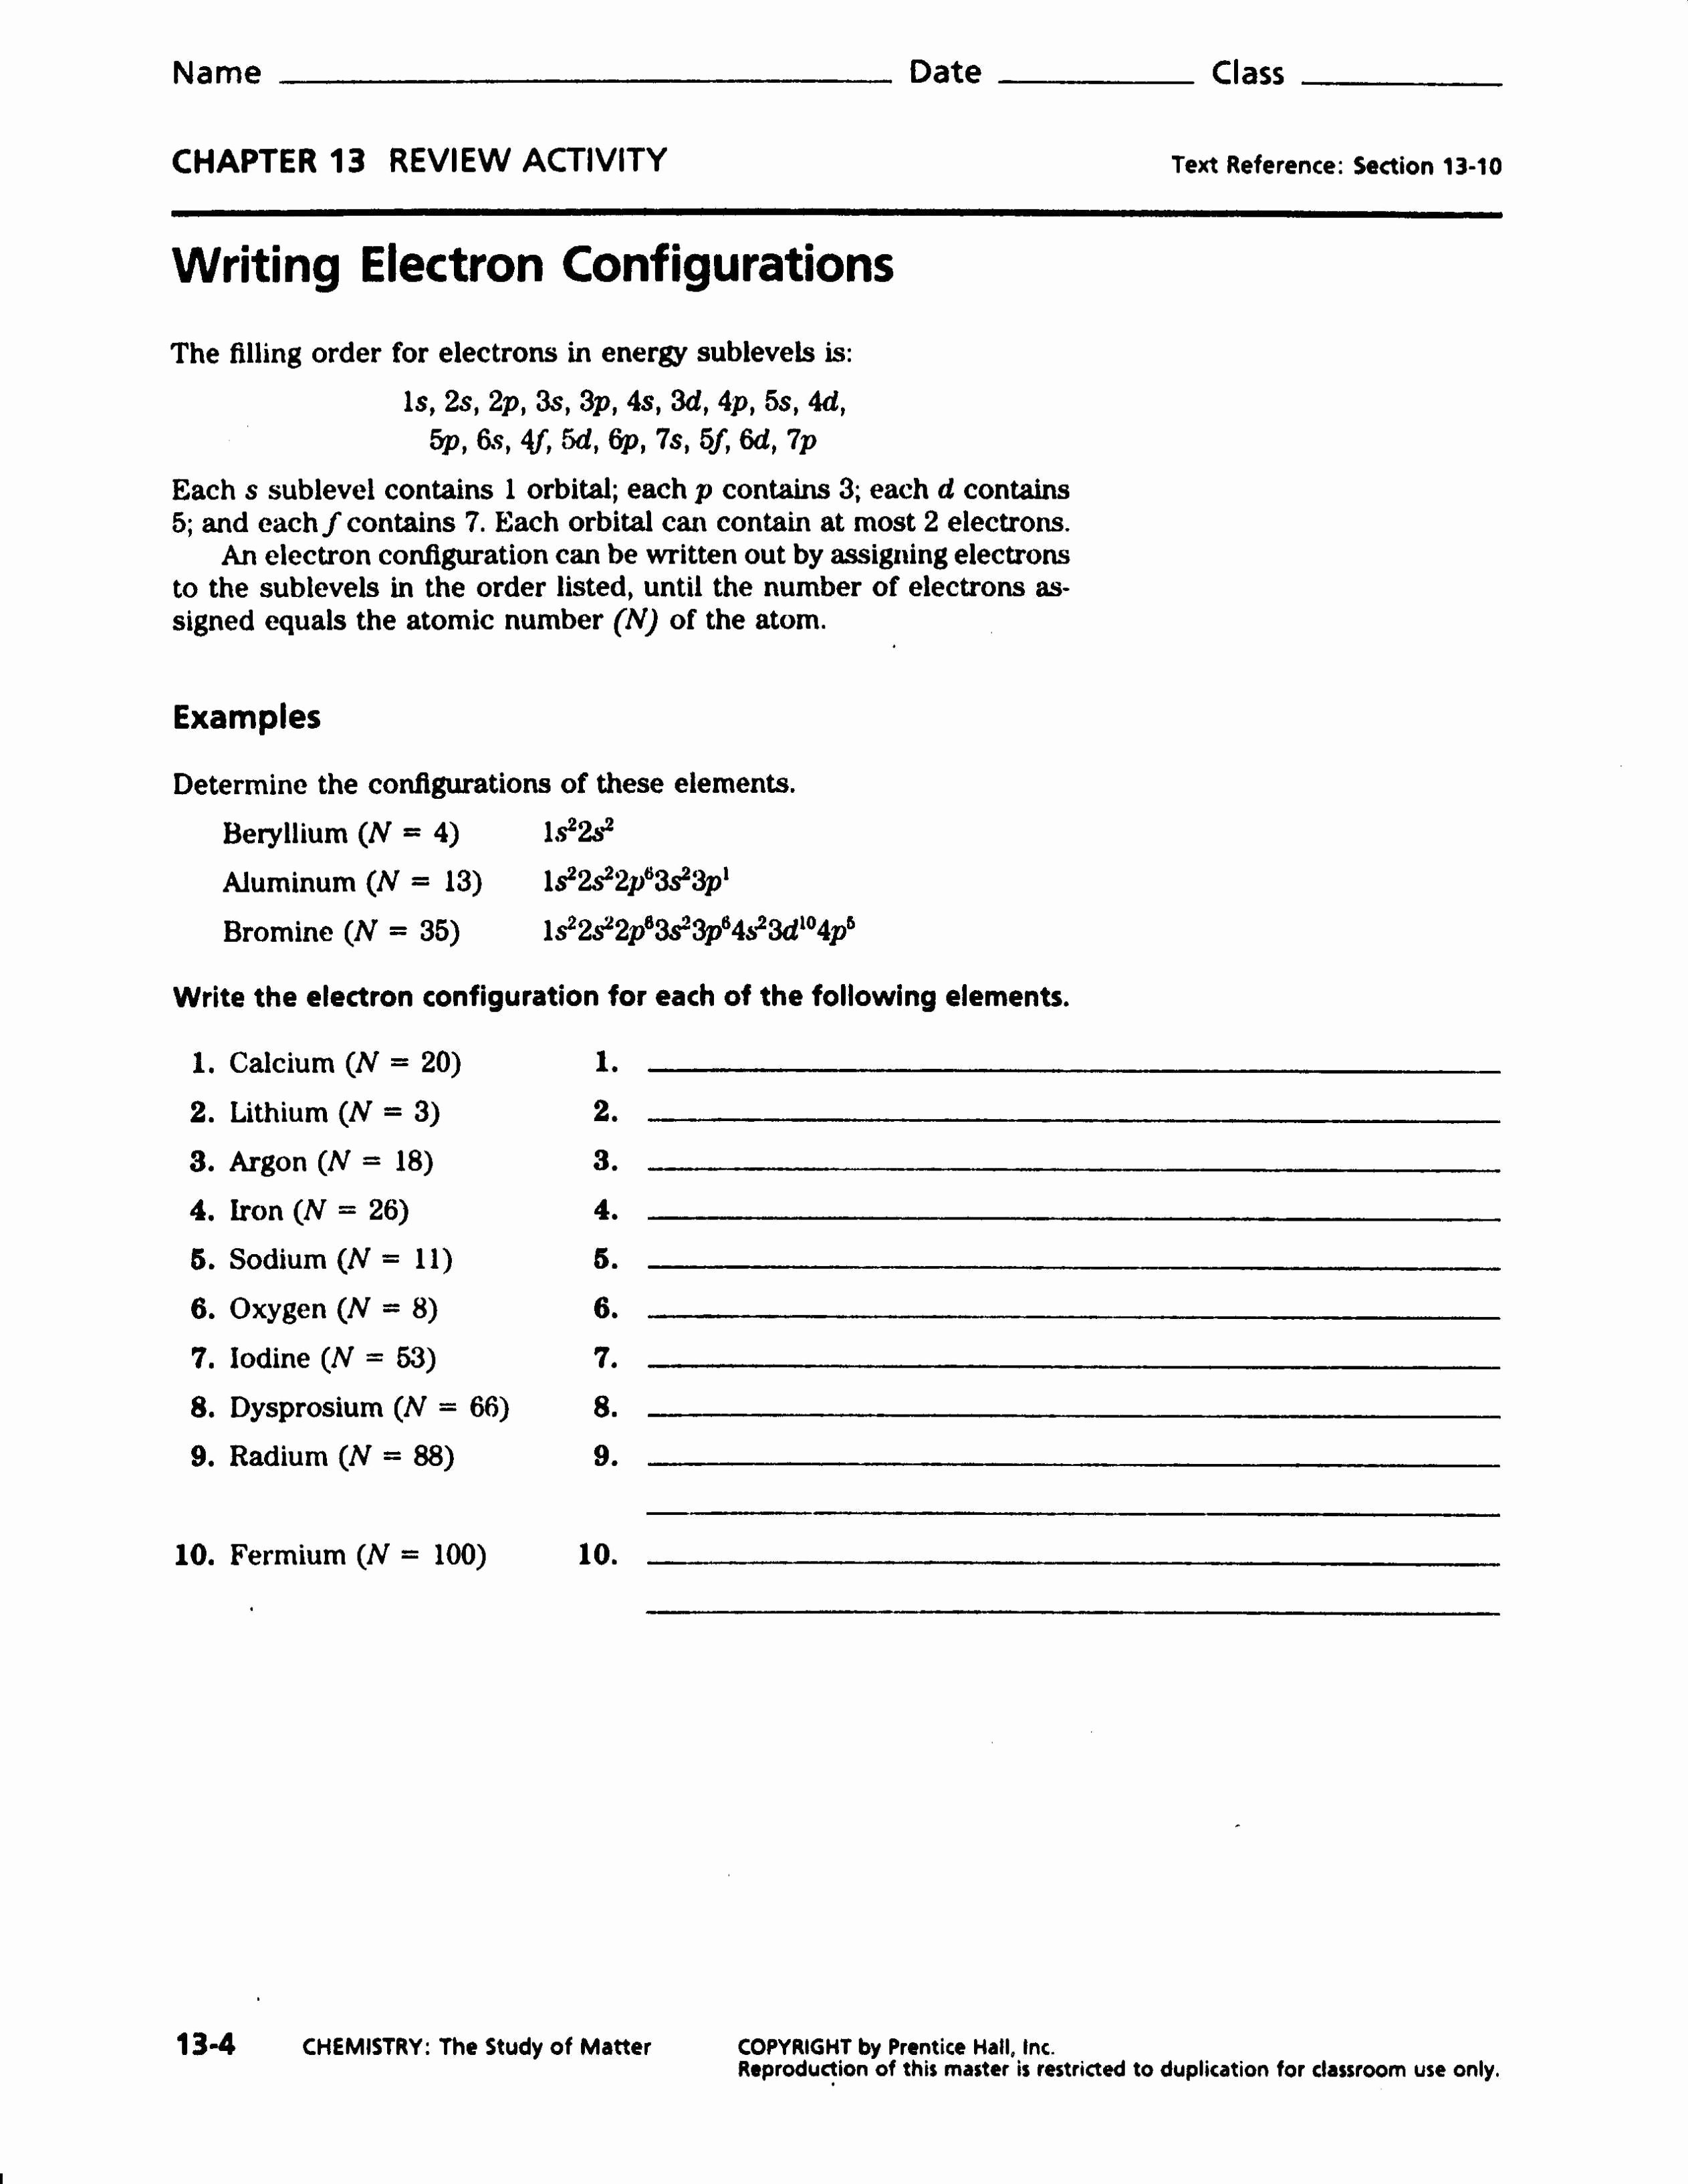 50 Bohr Model Diagrams Worksheet Answers